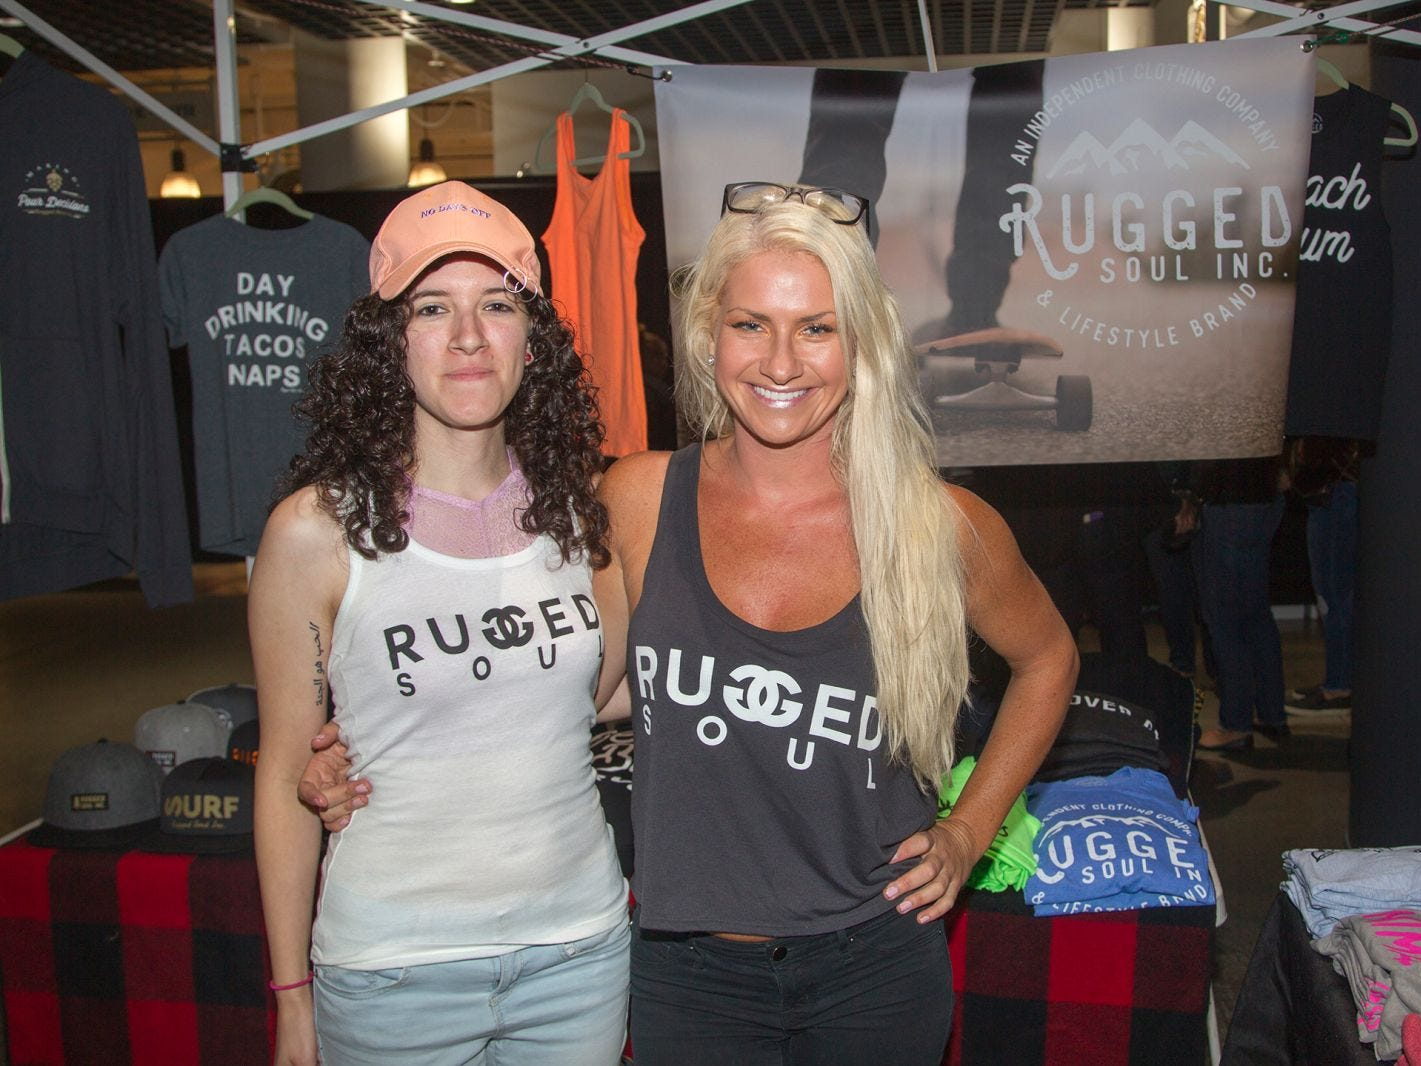 Rugges Soul - Alyssa Larssan, Jasmine Fuentes. Jersey City Craft Distillery Fest at the Harborside Atrium featured more than 100 styles of spirits. Guests had the chance to taste craft-distilled spirits from moonshine, rum, cognac, whiskey, vodka, gin, tequila and more. 09/08/2018